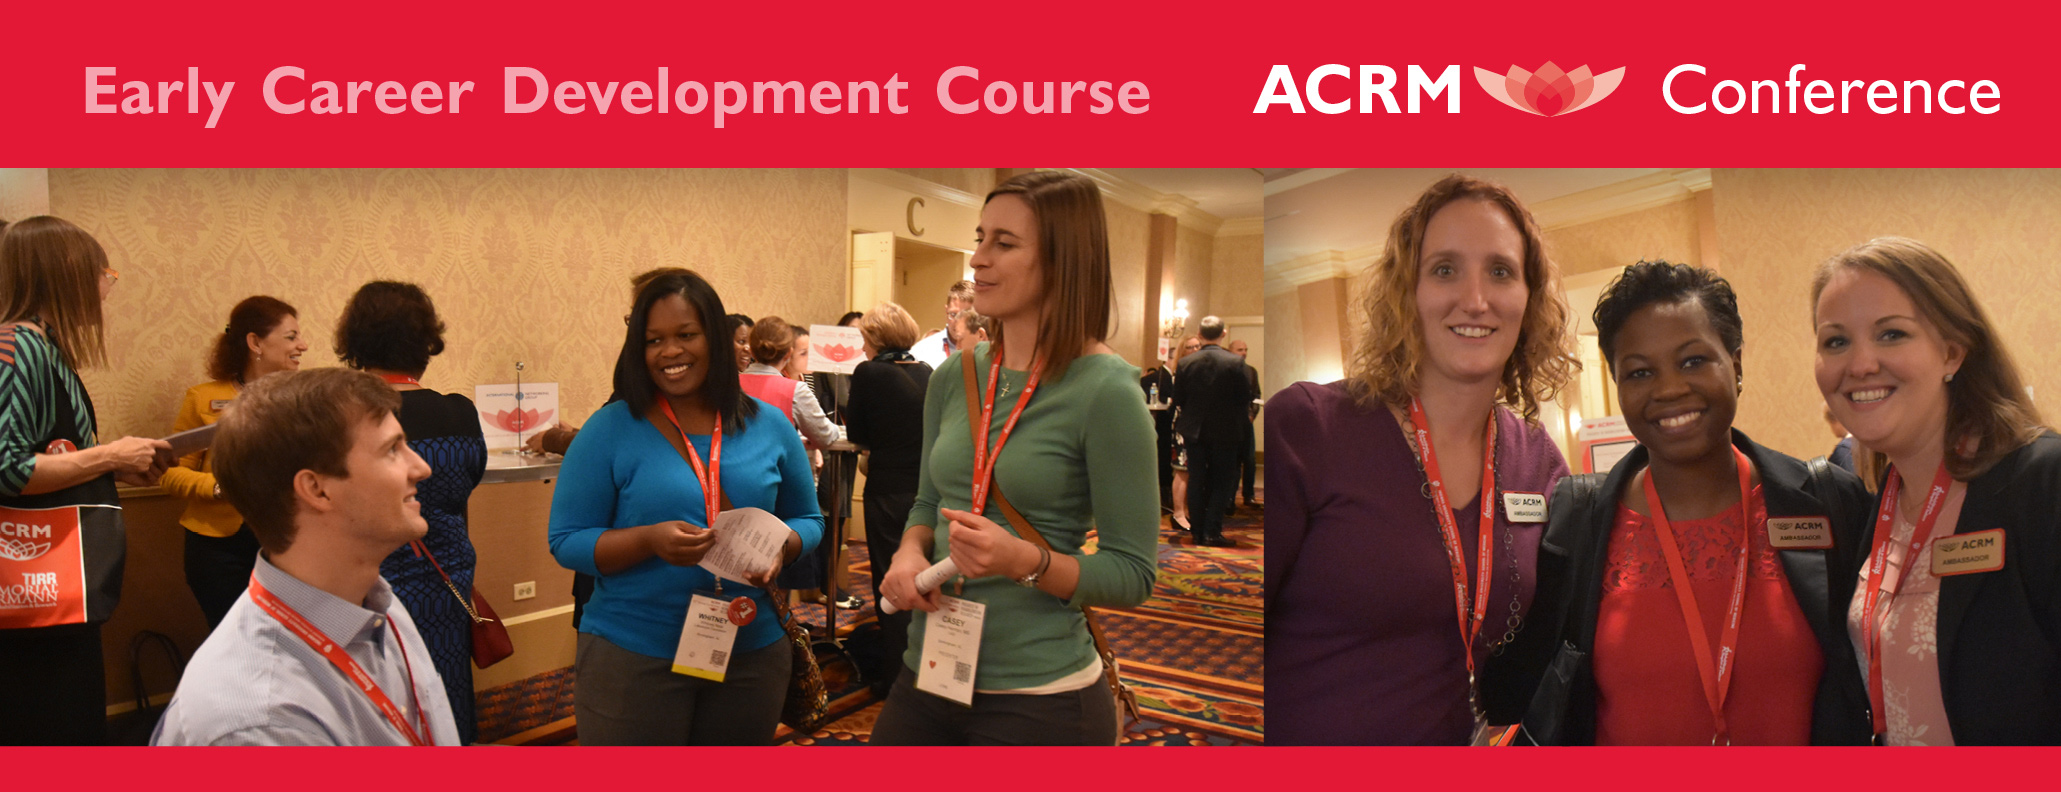 Early Career Development Course at ACRM Conference